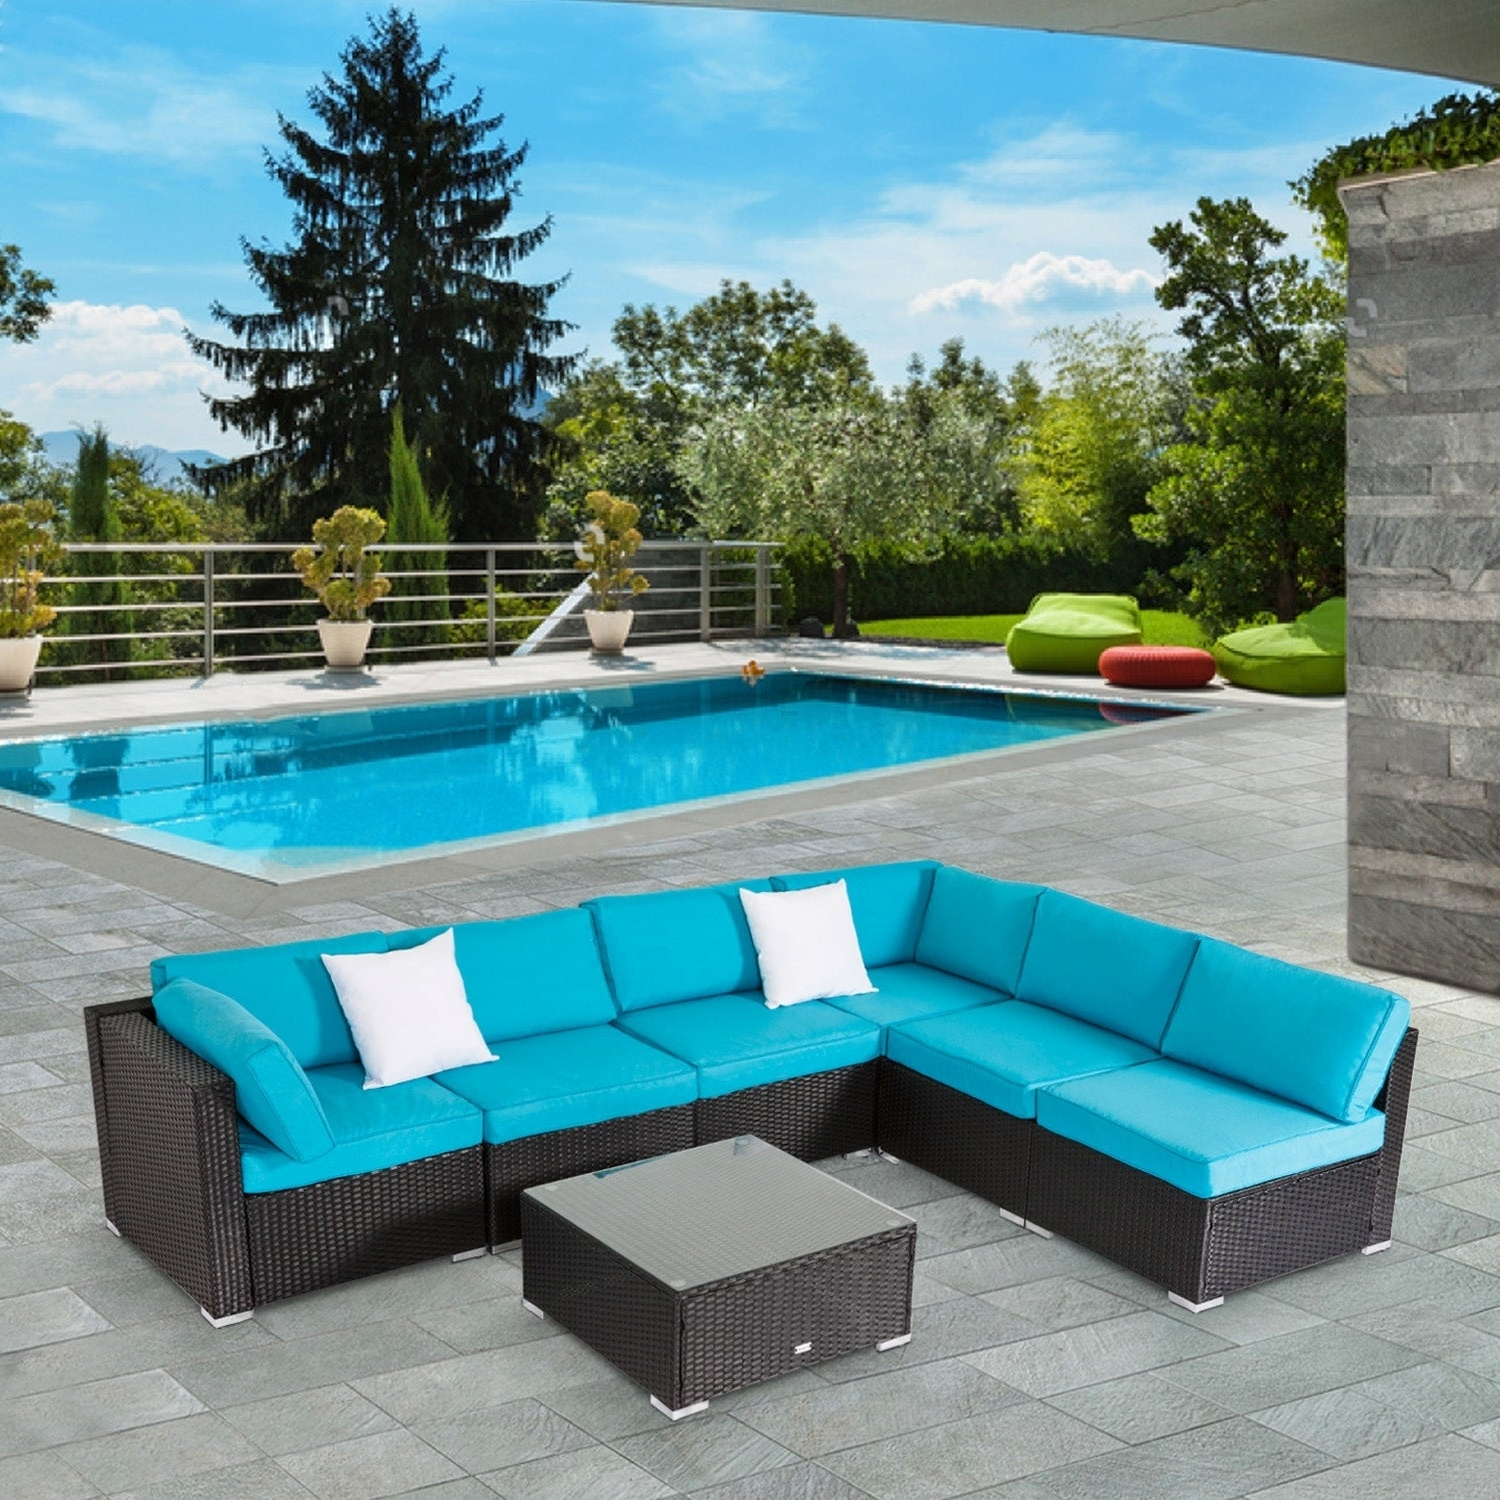 Kinbor 7 Piece Patio Furniture Set All Weather Outdoor Furniture Sectional Sofa W/ Cushions Throughout Newest Patio Sofas With Cushions (View 9 of 20)